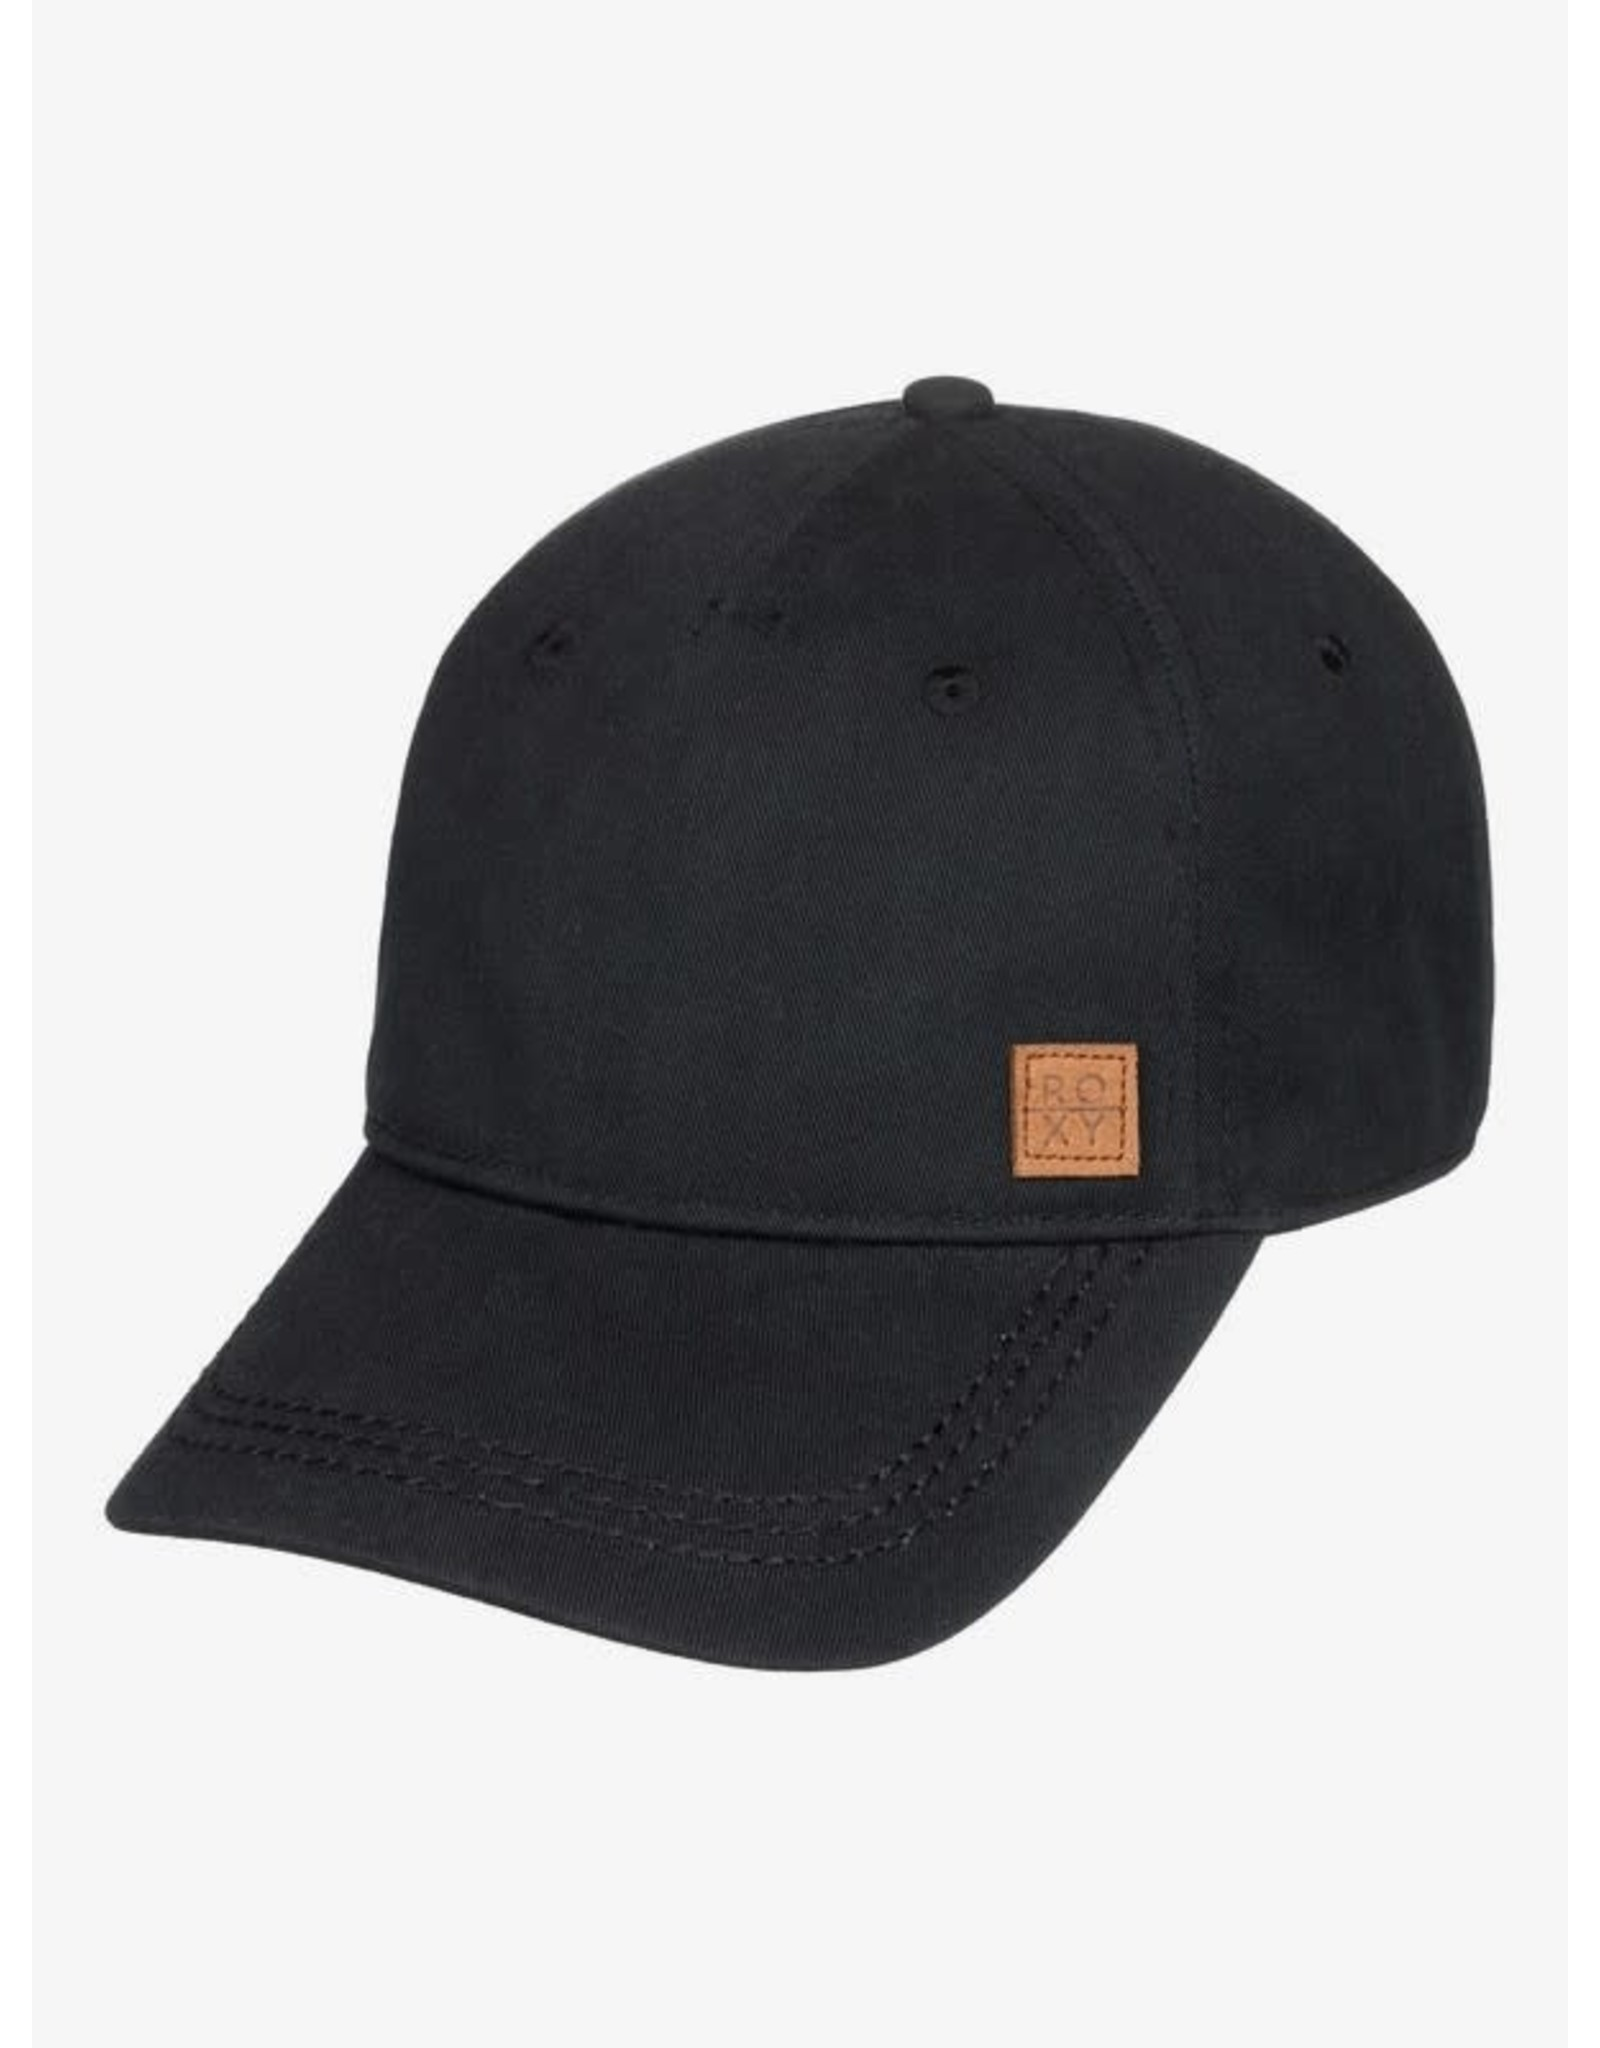 Roxy Roxy - Casquette femme extra innings baseball anthracite